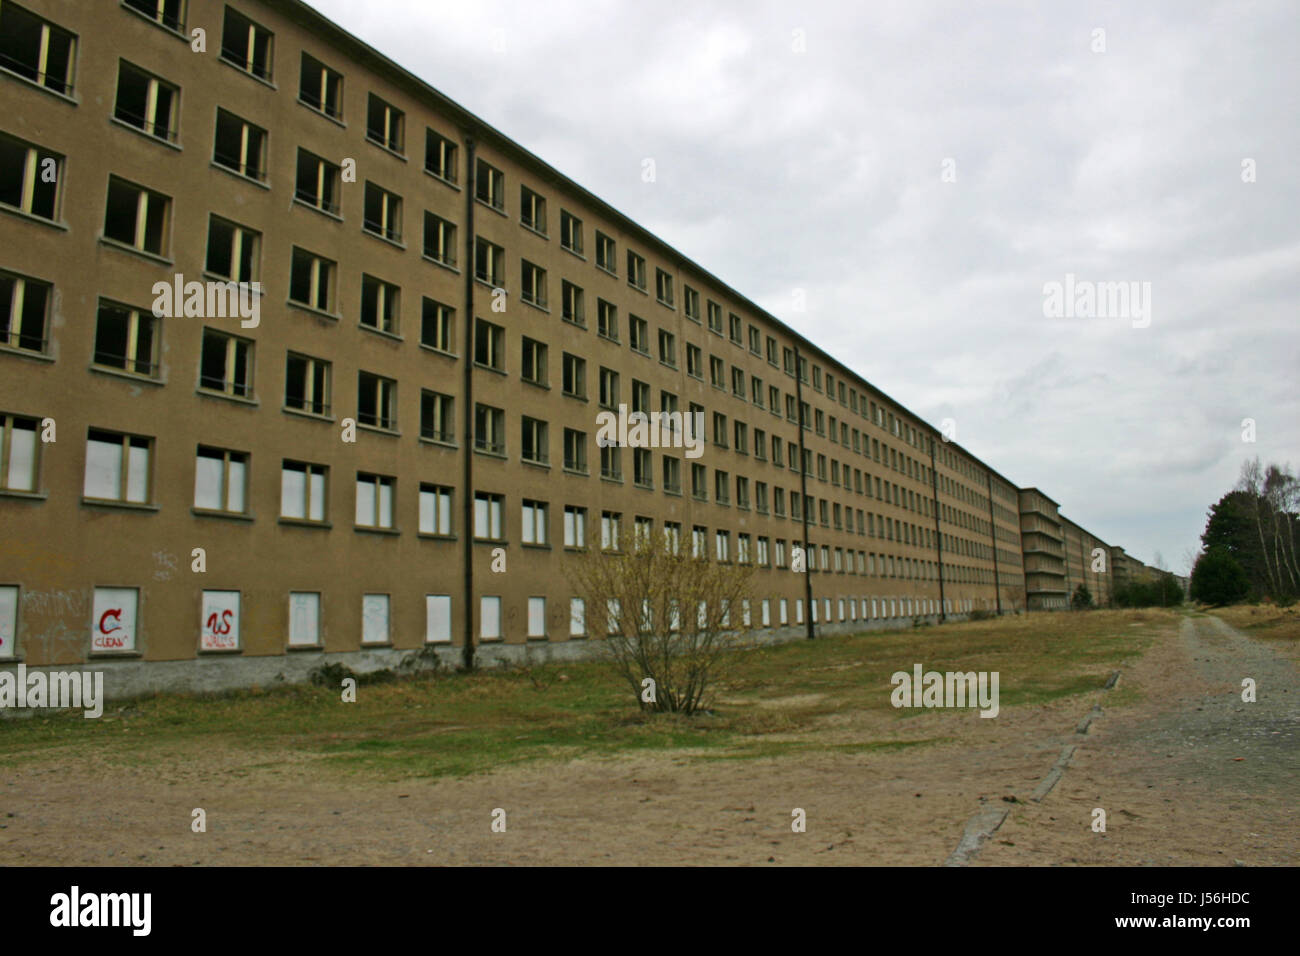 prora - color version iii - Stock Image